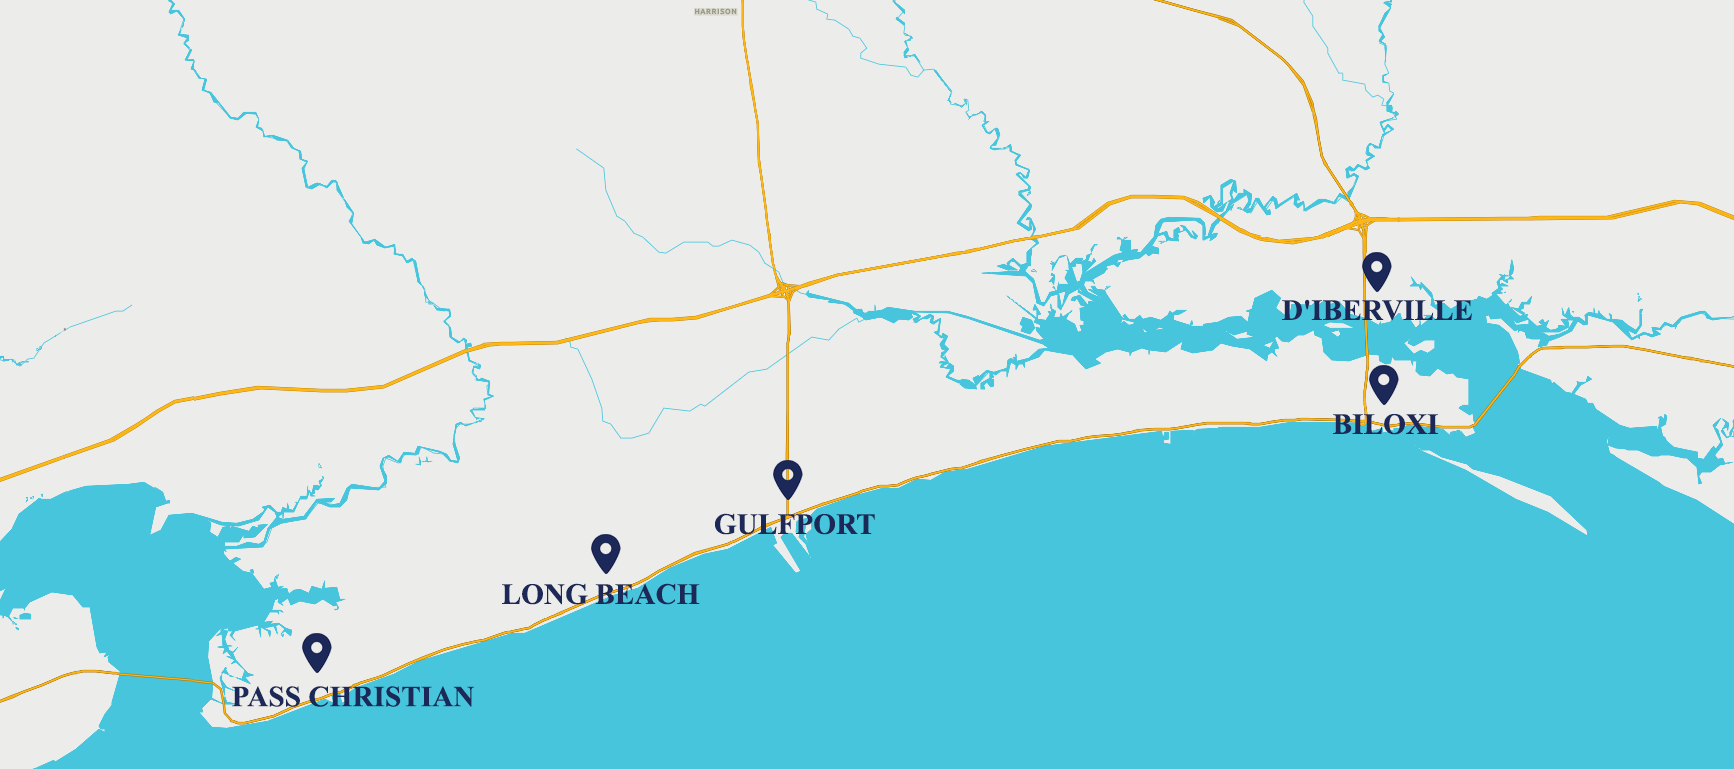 This is a map of Harrison County, Mississippi showing the location of the five cities: Pass Christian, Long Beach, Gulfport, Biloxi and D'Iberville.